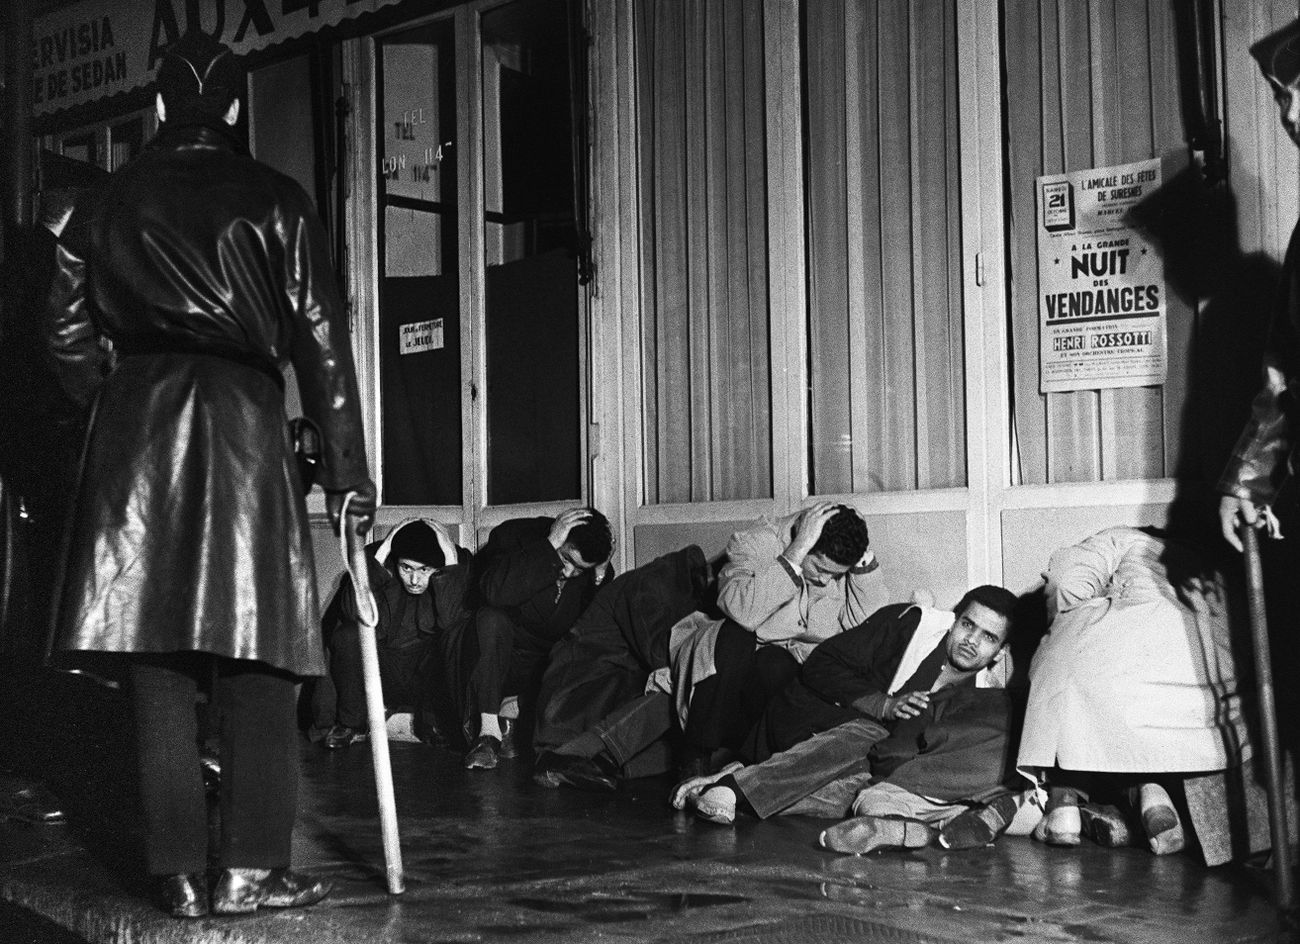 In 1961, a shameful moment when the horrors of WWII seemed to be returning